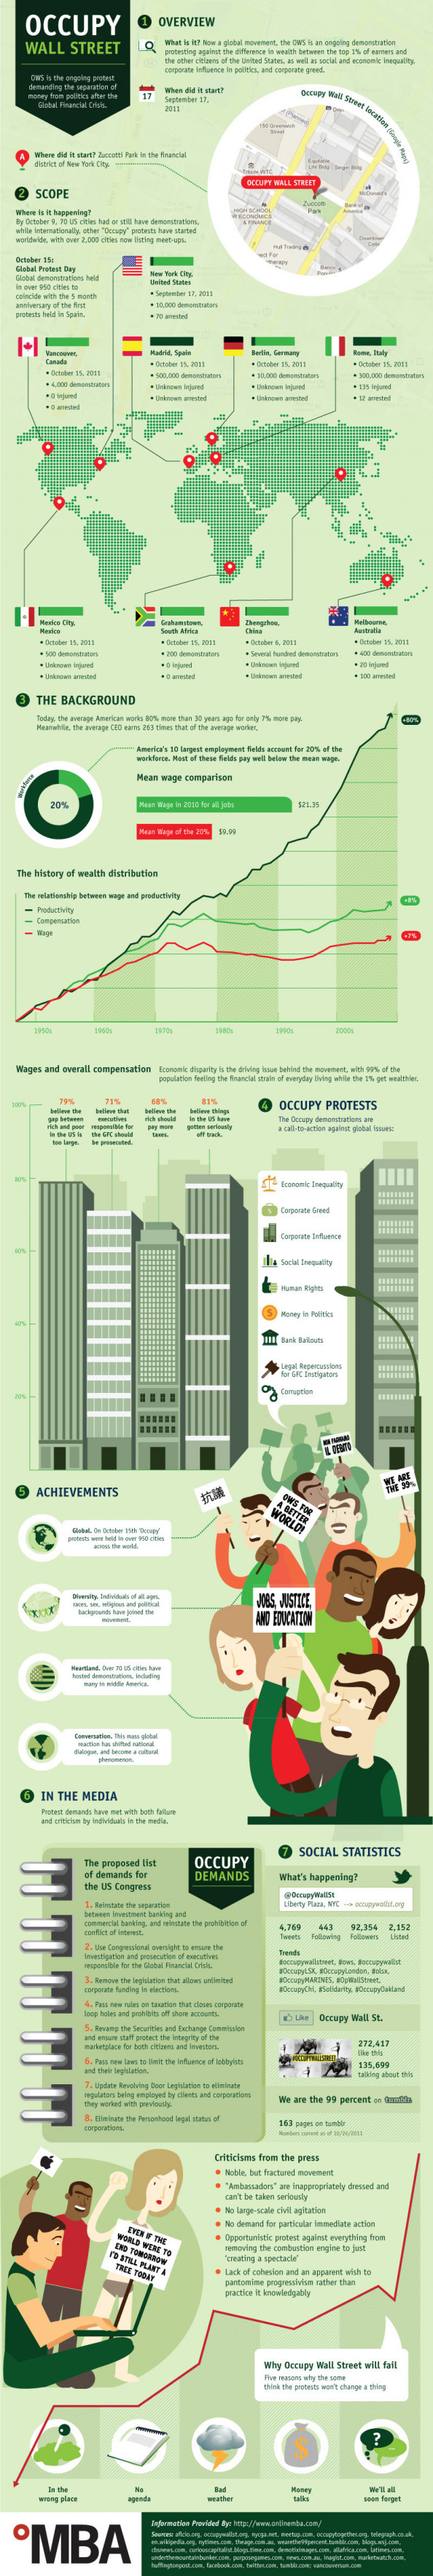 Occupy Wall Street: Overview, Scope & Background Infographic